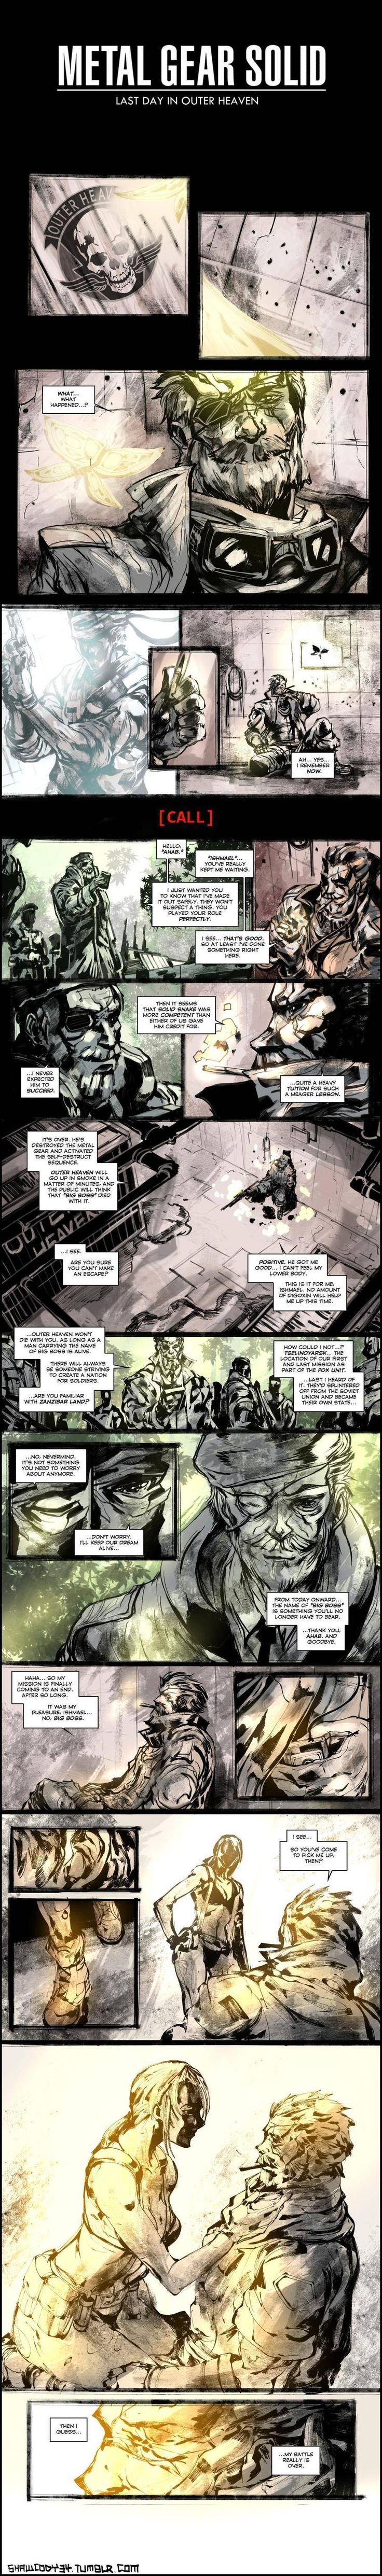 Fancomic - Last Day in Outer Heaven